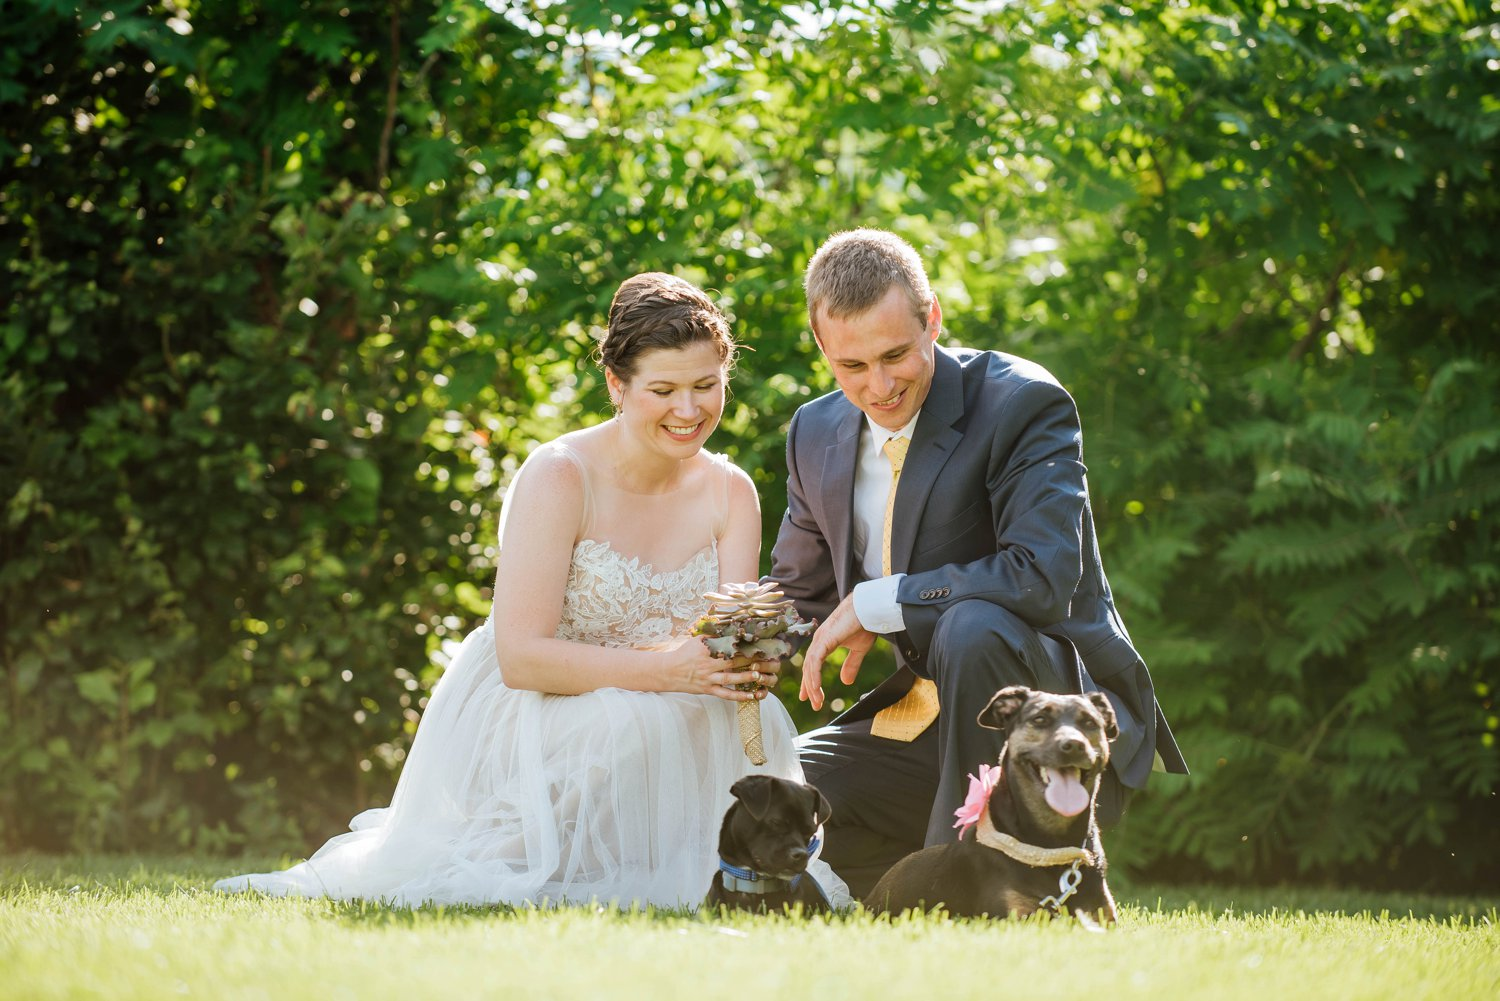 The bride and groom posing with their dogs! i love dog friendly weddings!Photo by Maddie Mae Photography